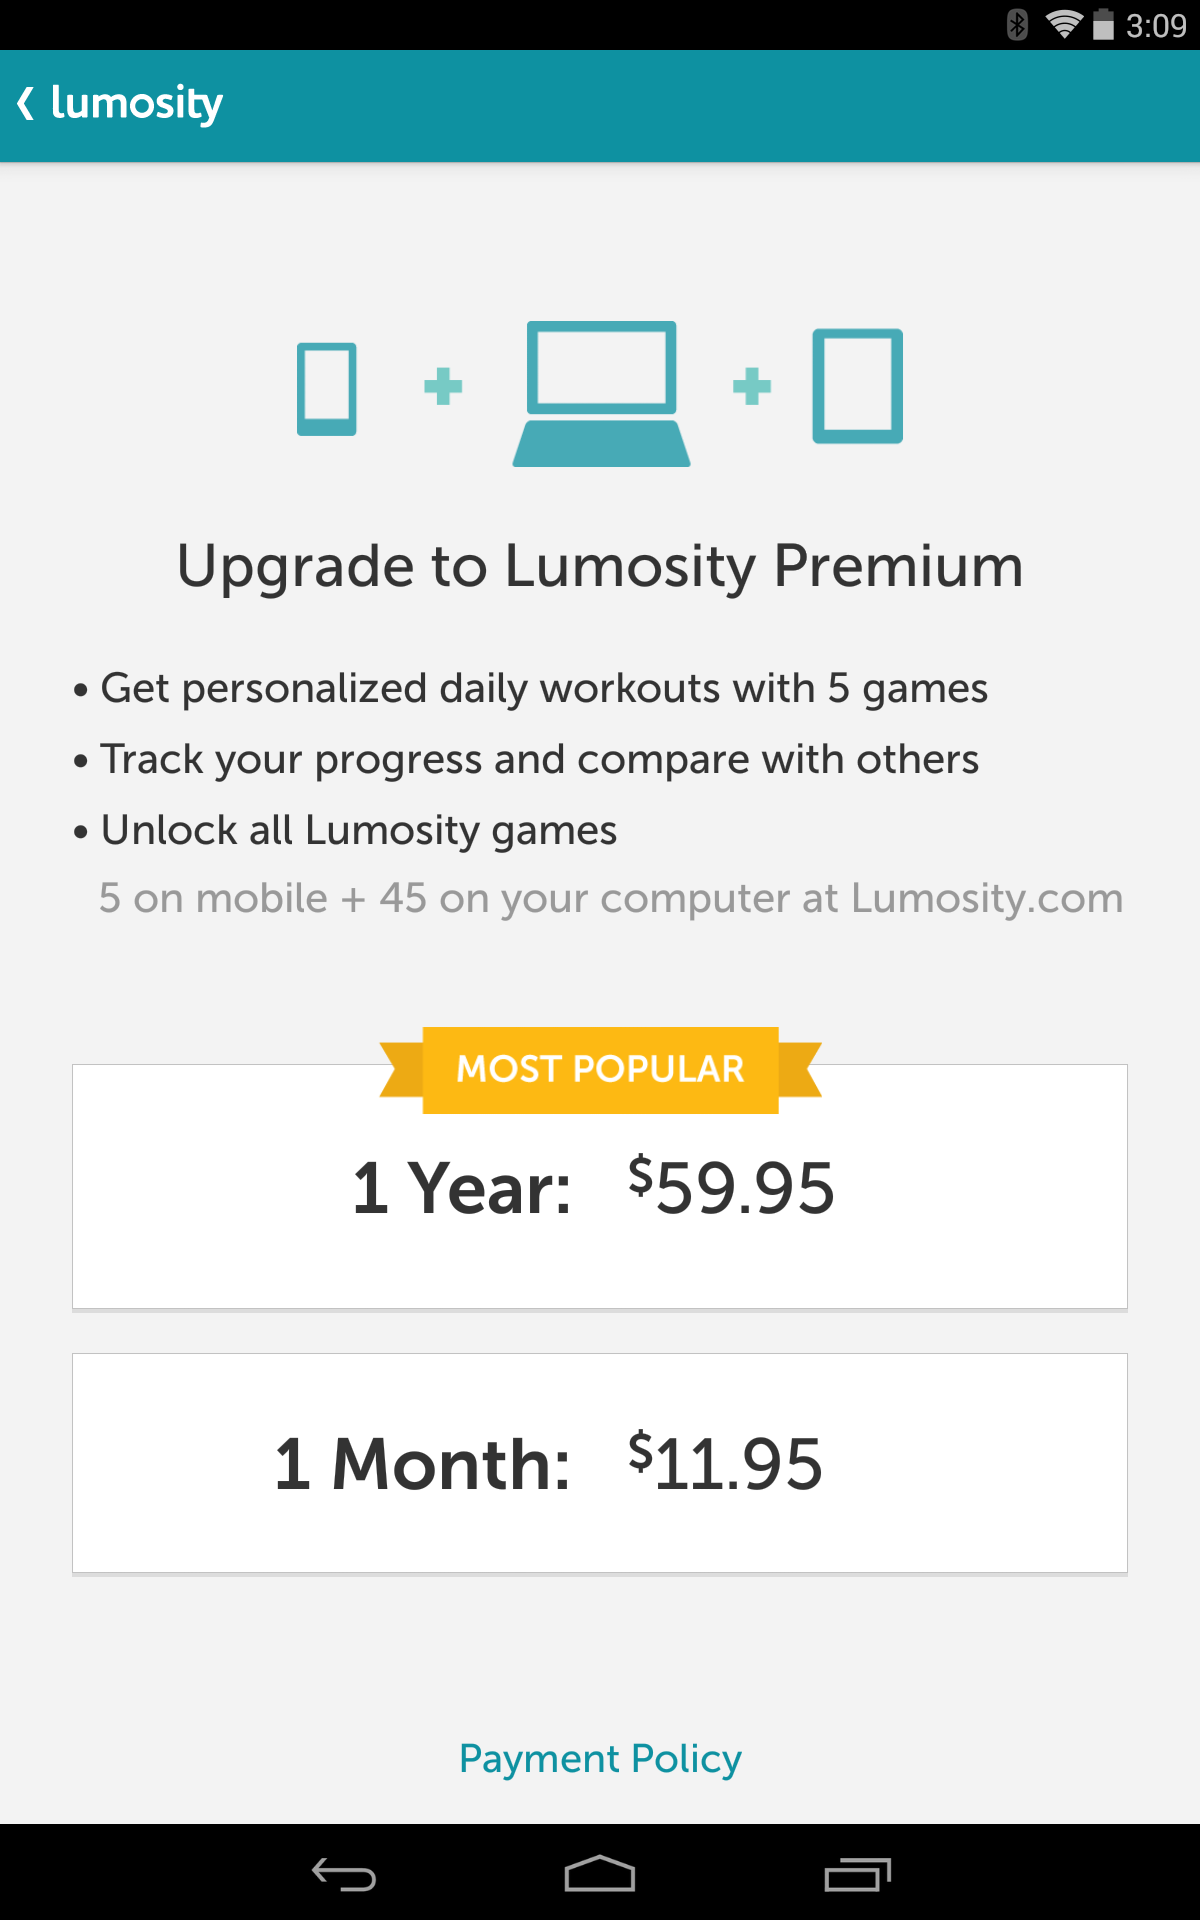 How much does Luminosity cost per month?